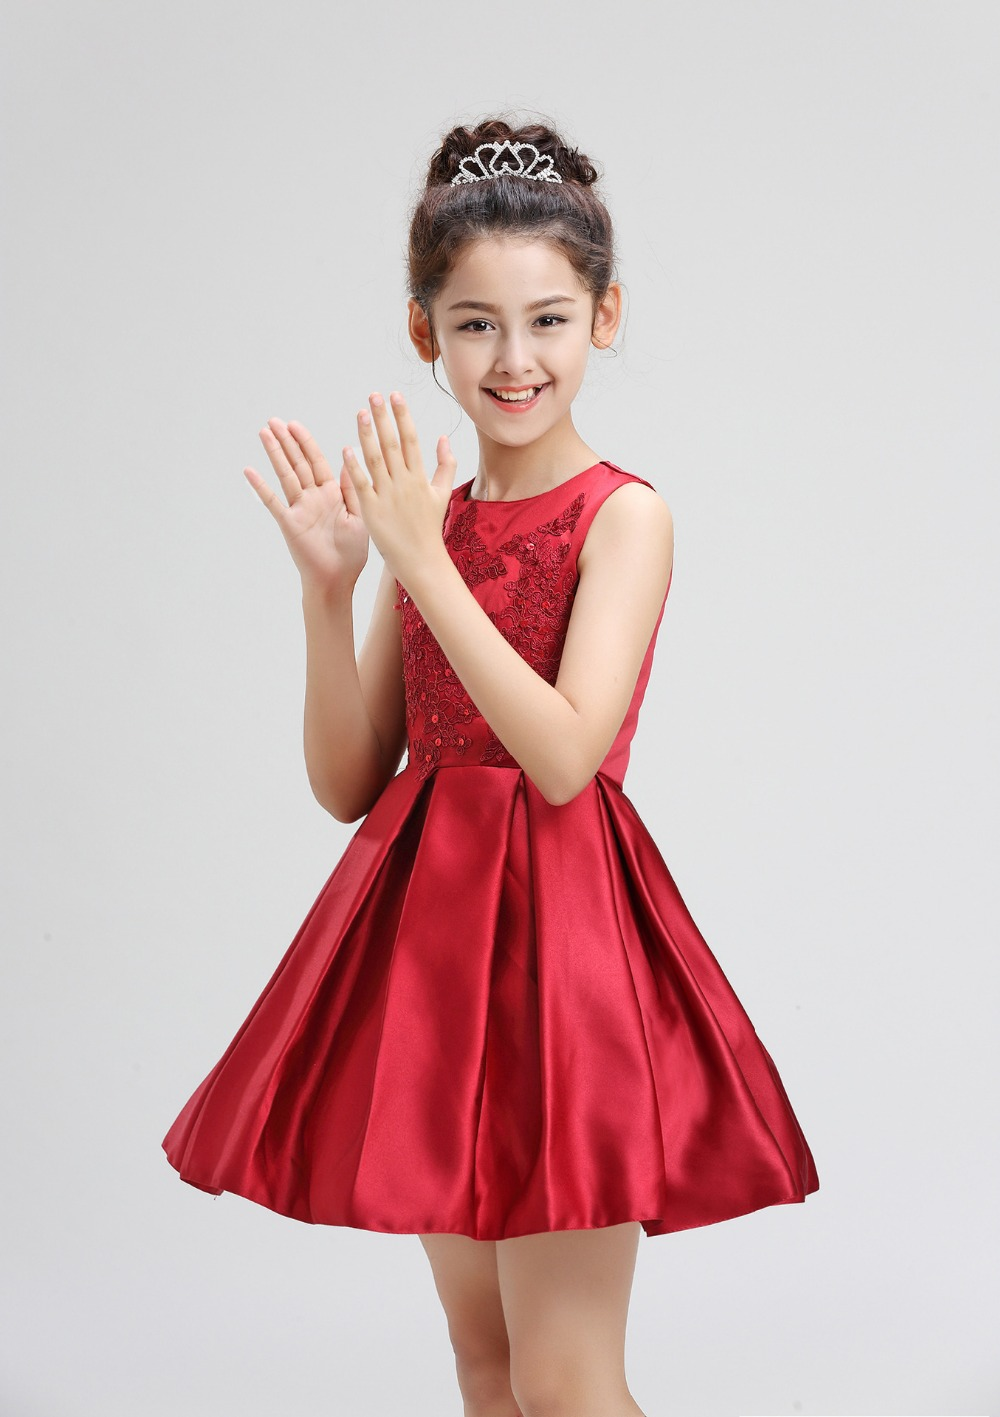 49793d037927e Luxury Red wine Princess Flower Girl Dress for Weddings Events Summer 2019  New Birthday Evening Prom Party Dresses Kids Clothes